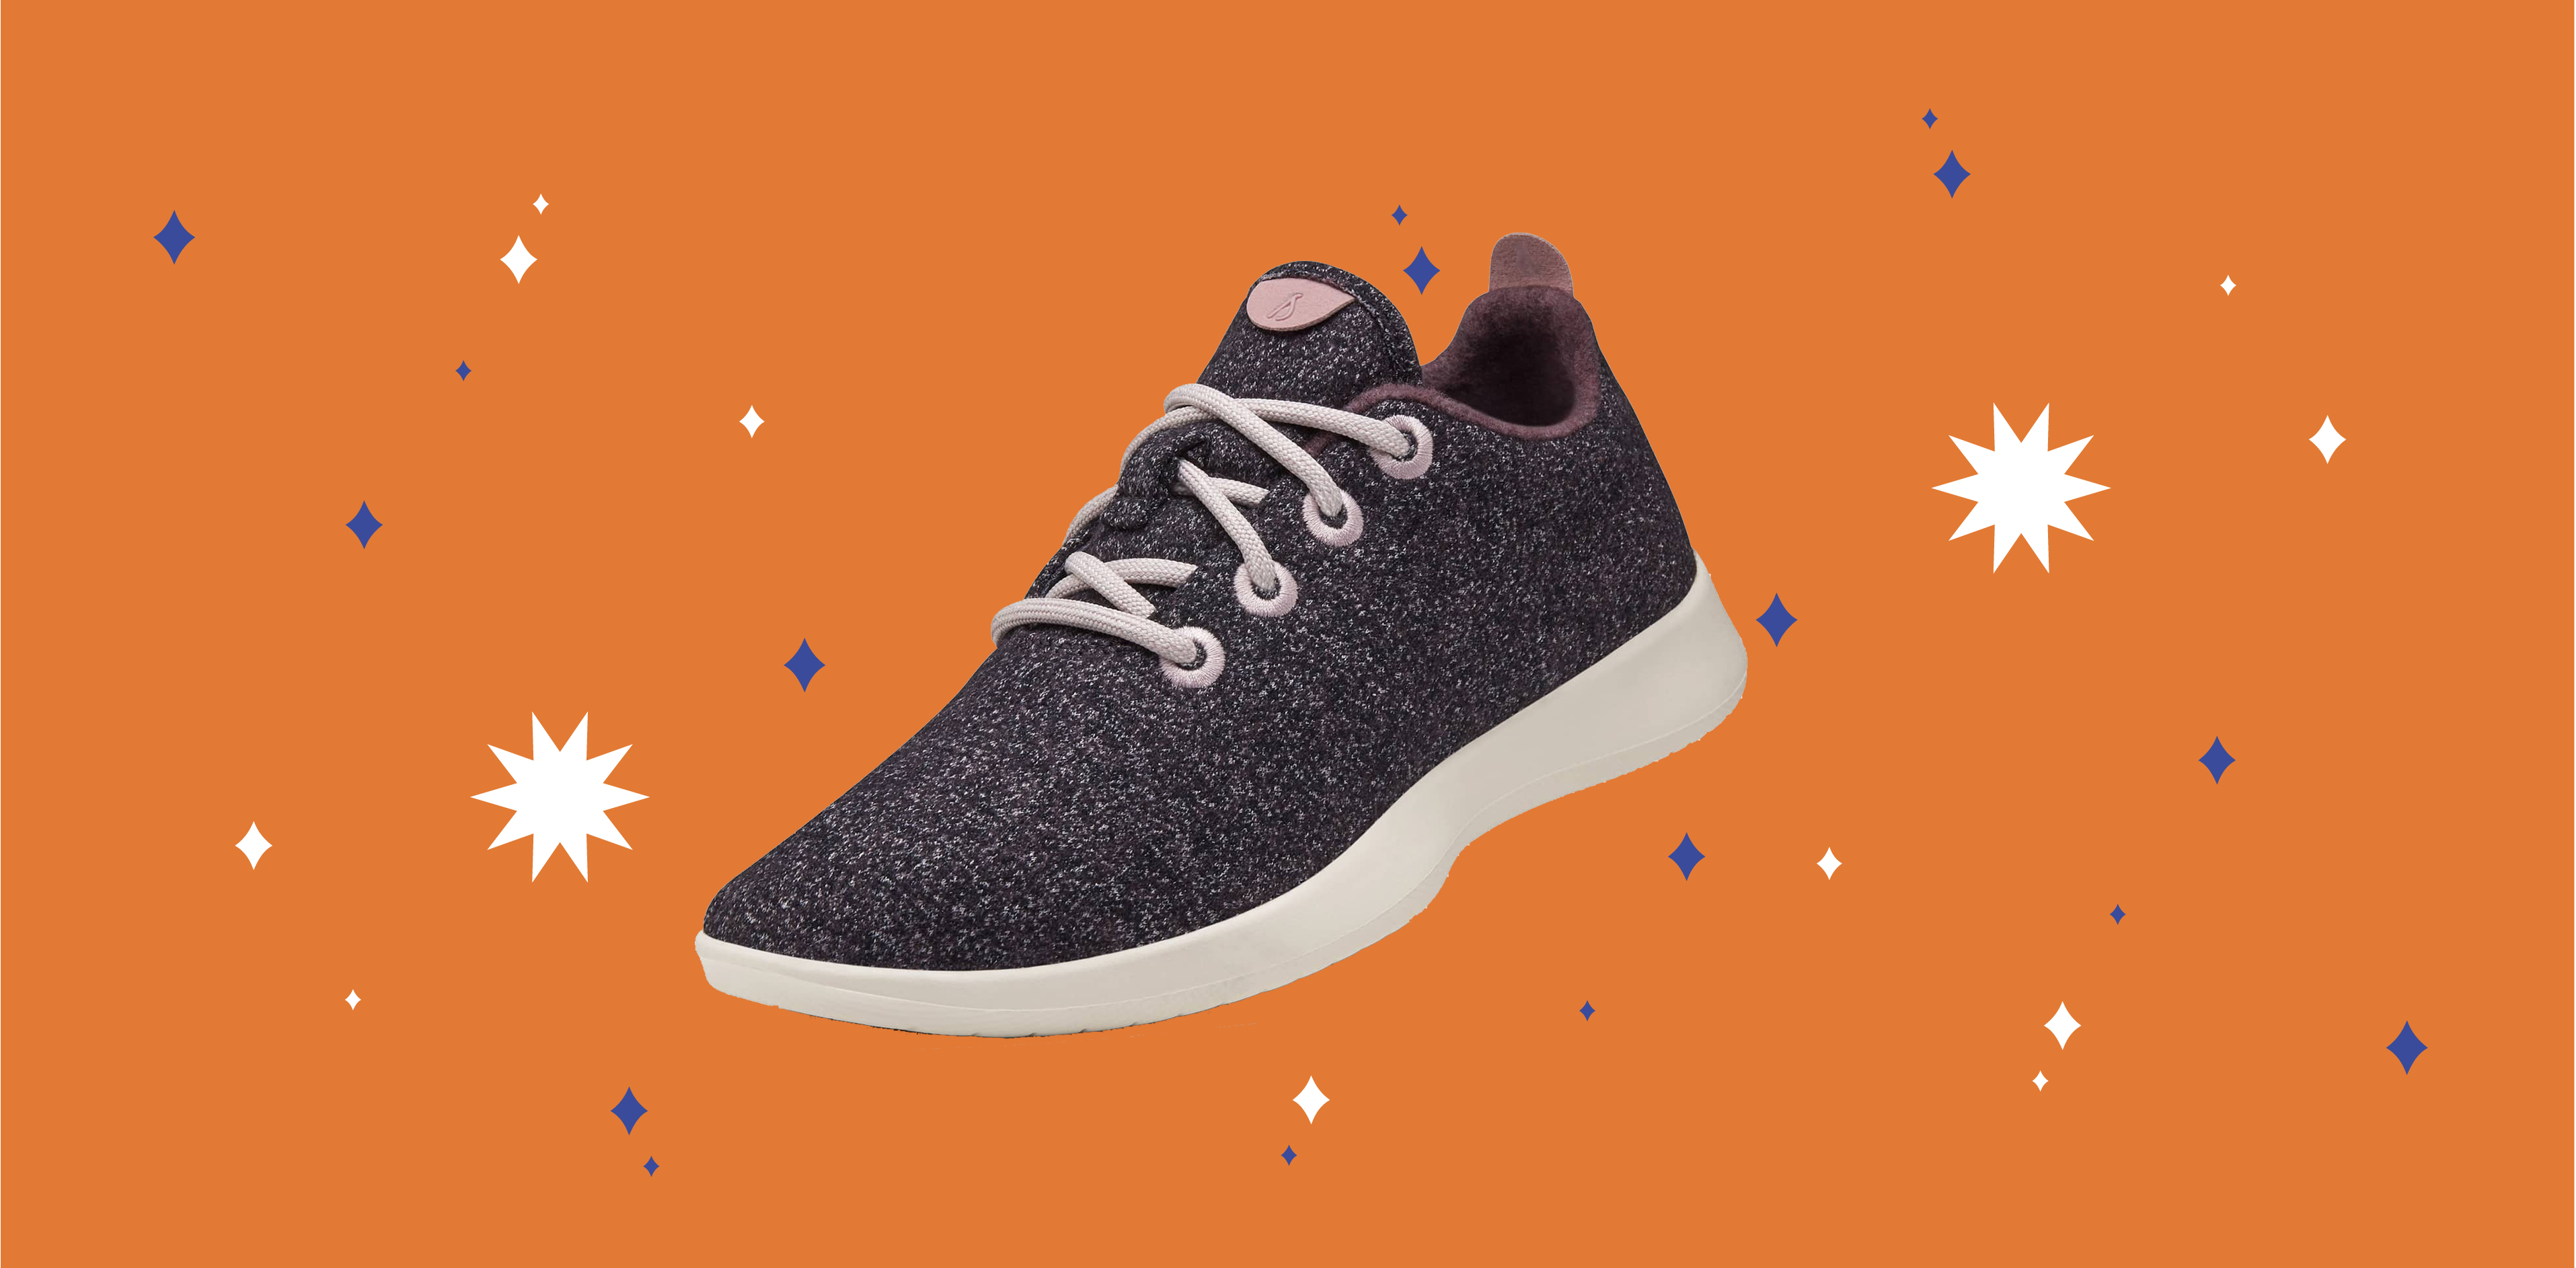 641fa9c983e Allbirds Review  Are These Wool Shoes Worth It